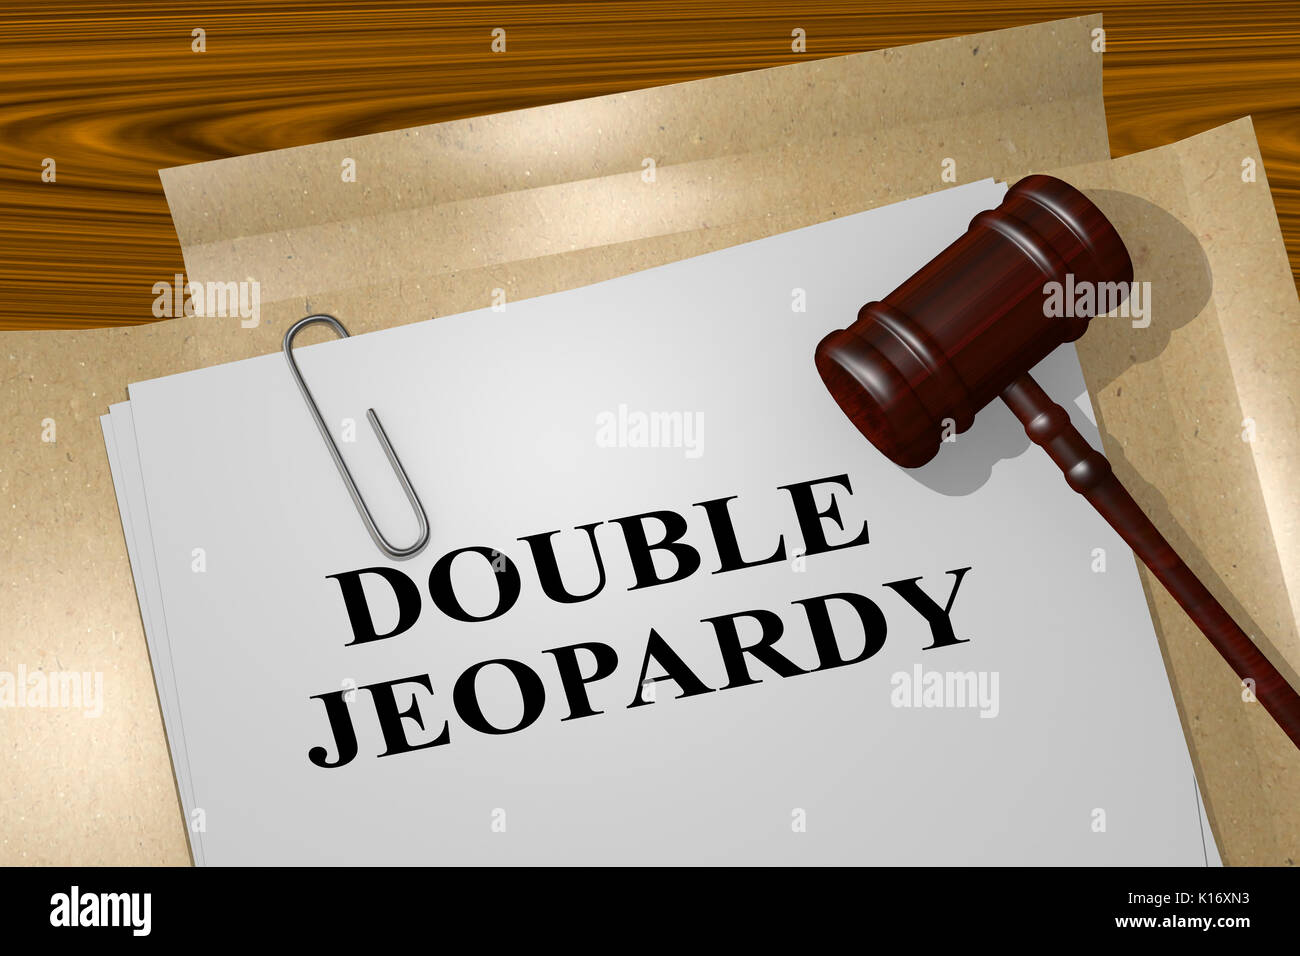 3D illustration of 'DOUBLE JEOPARDY' title on legal document - Stock Image